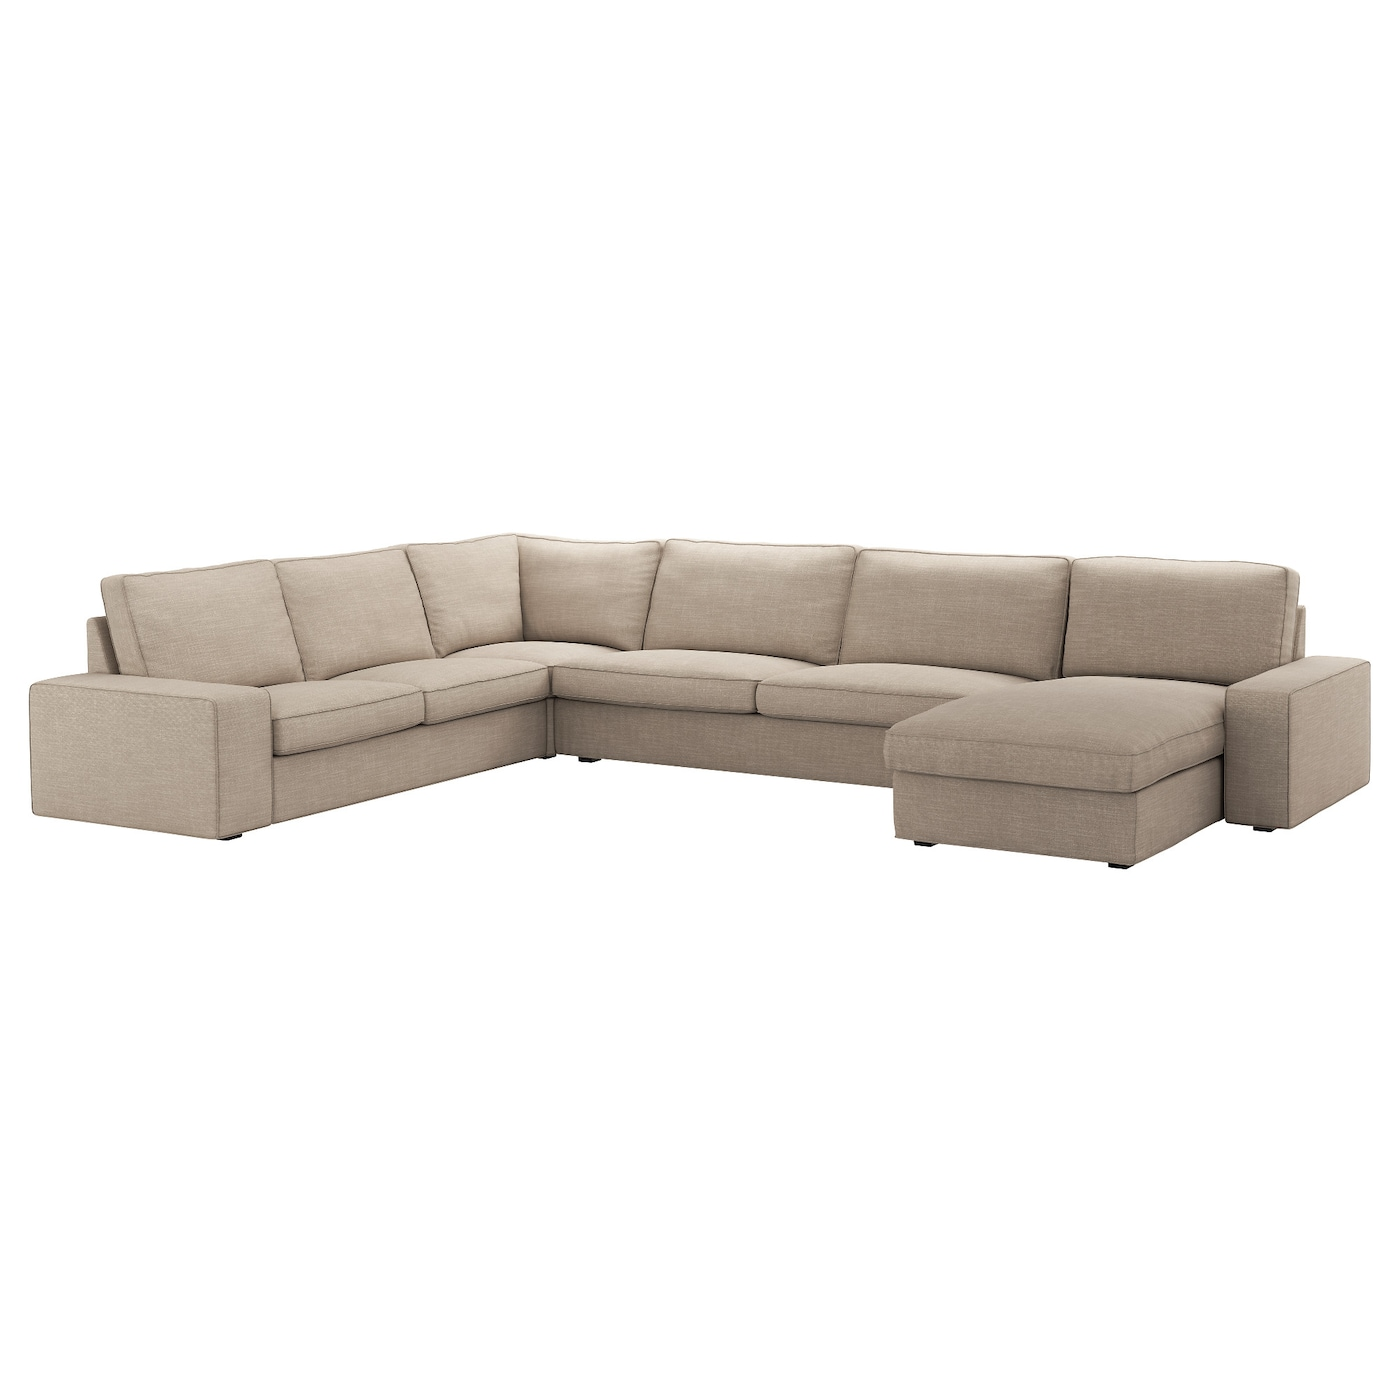 Kivik corner sofa 23 32 and chaise longue hillared beige for Sofas con chaise longue